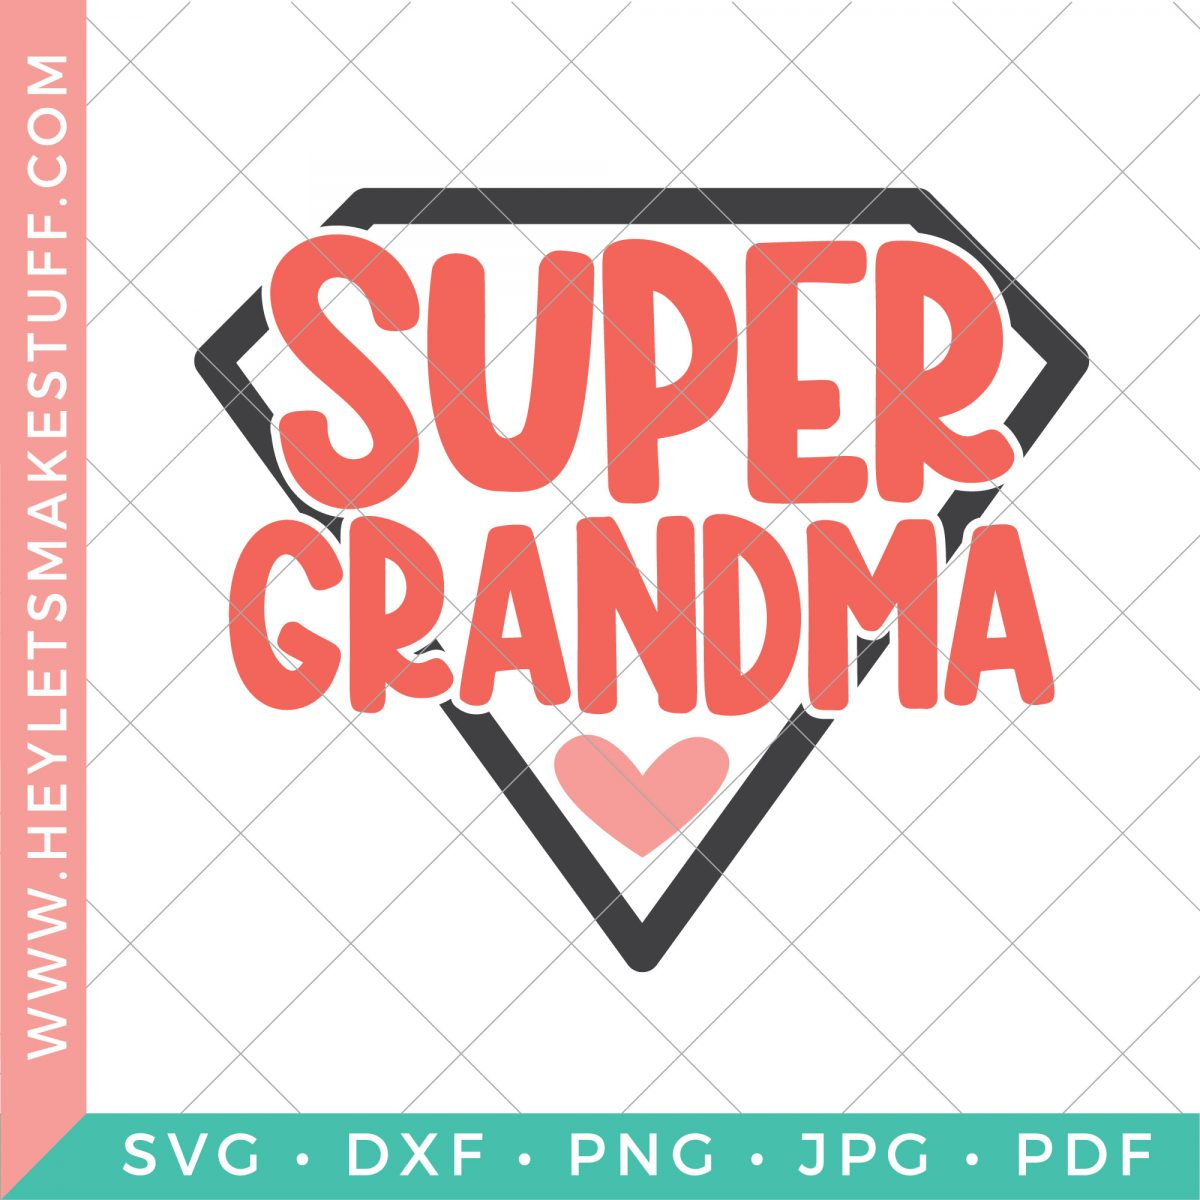 Super grandma on security background